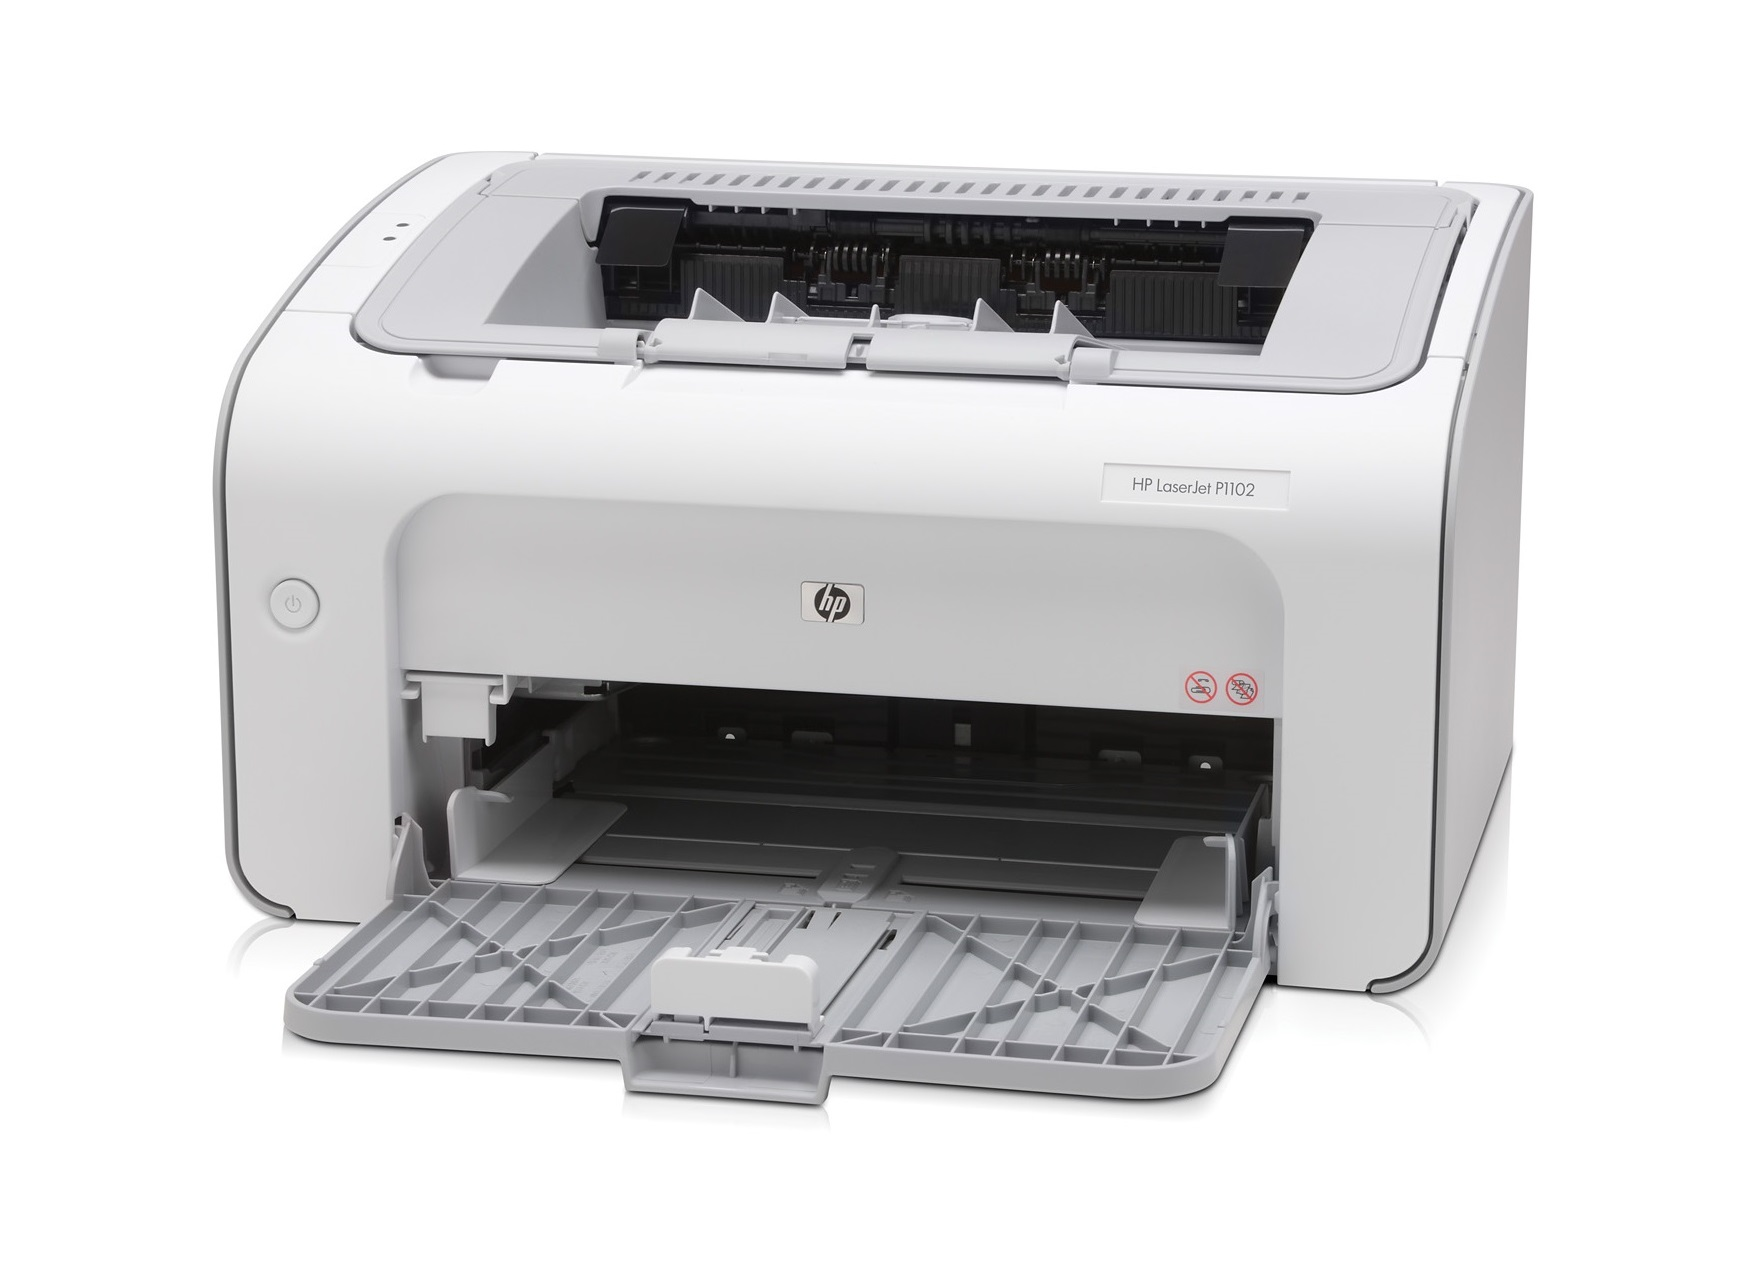 HP 1102 laser printer: specifications, cartridge, reviews 63